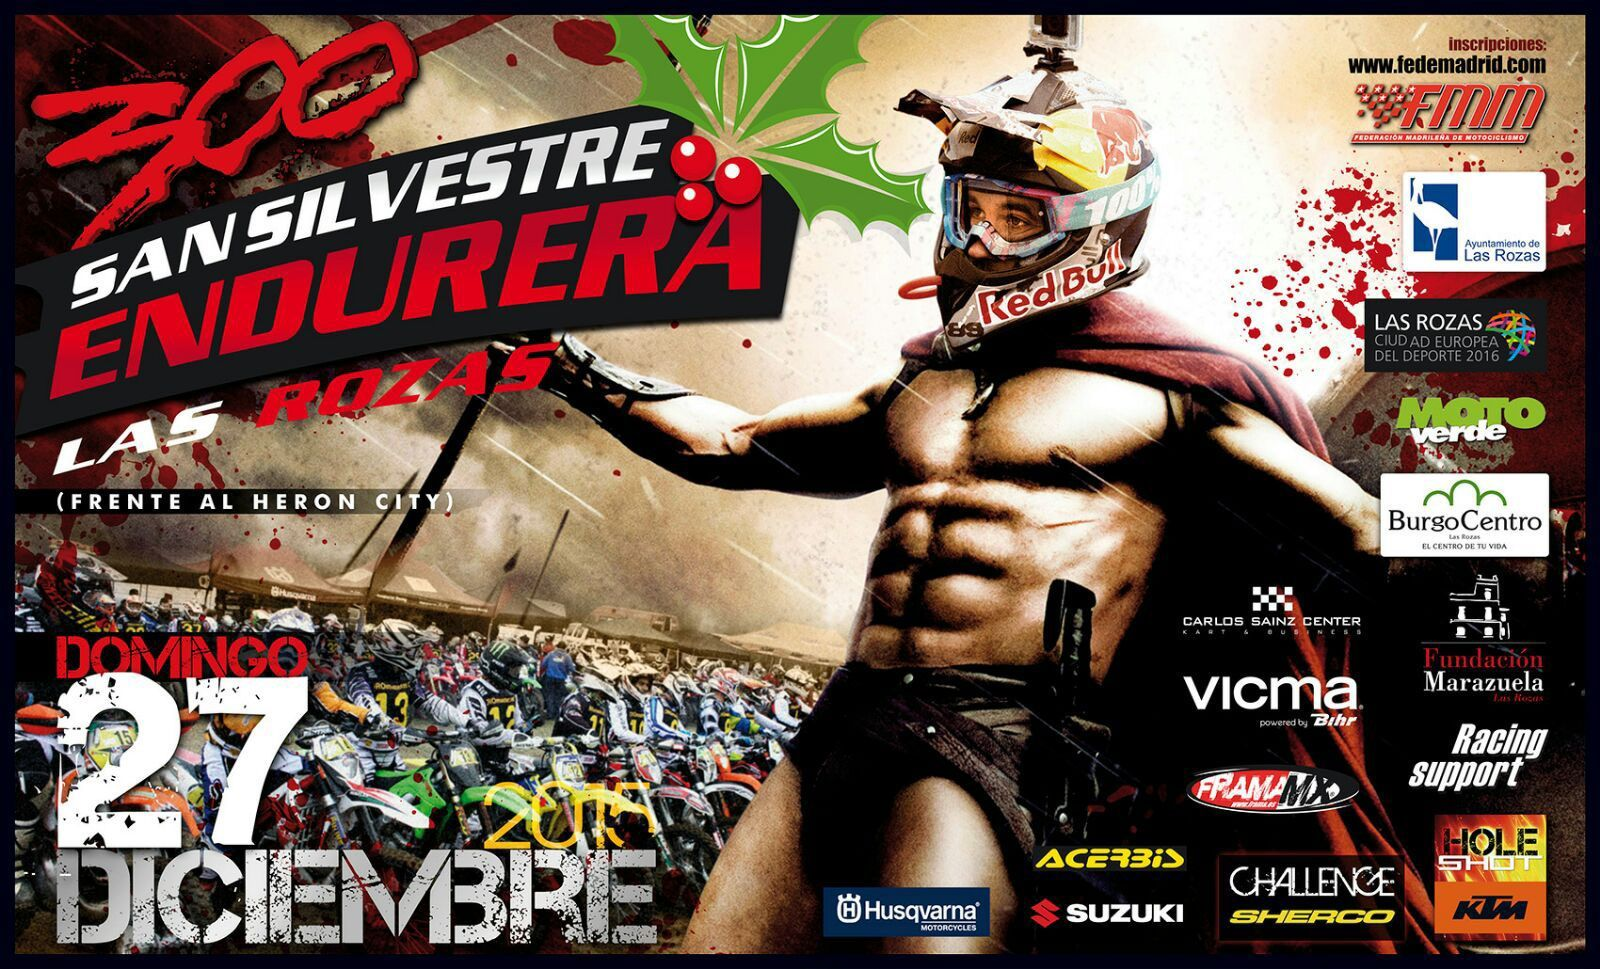 San Silvestre Endurera 2015 despide el año off road